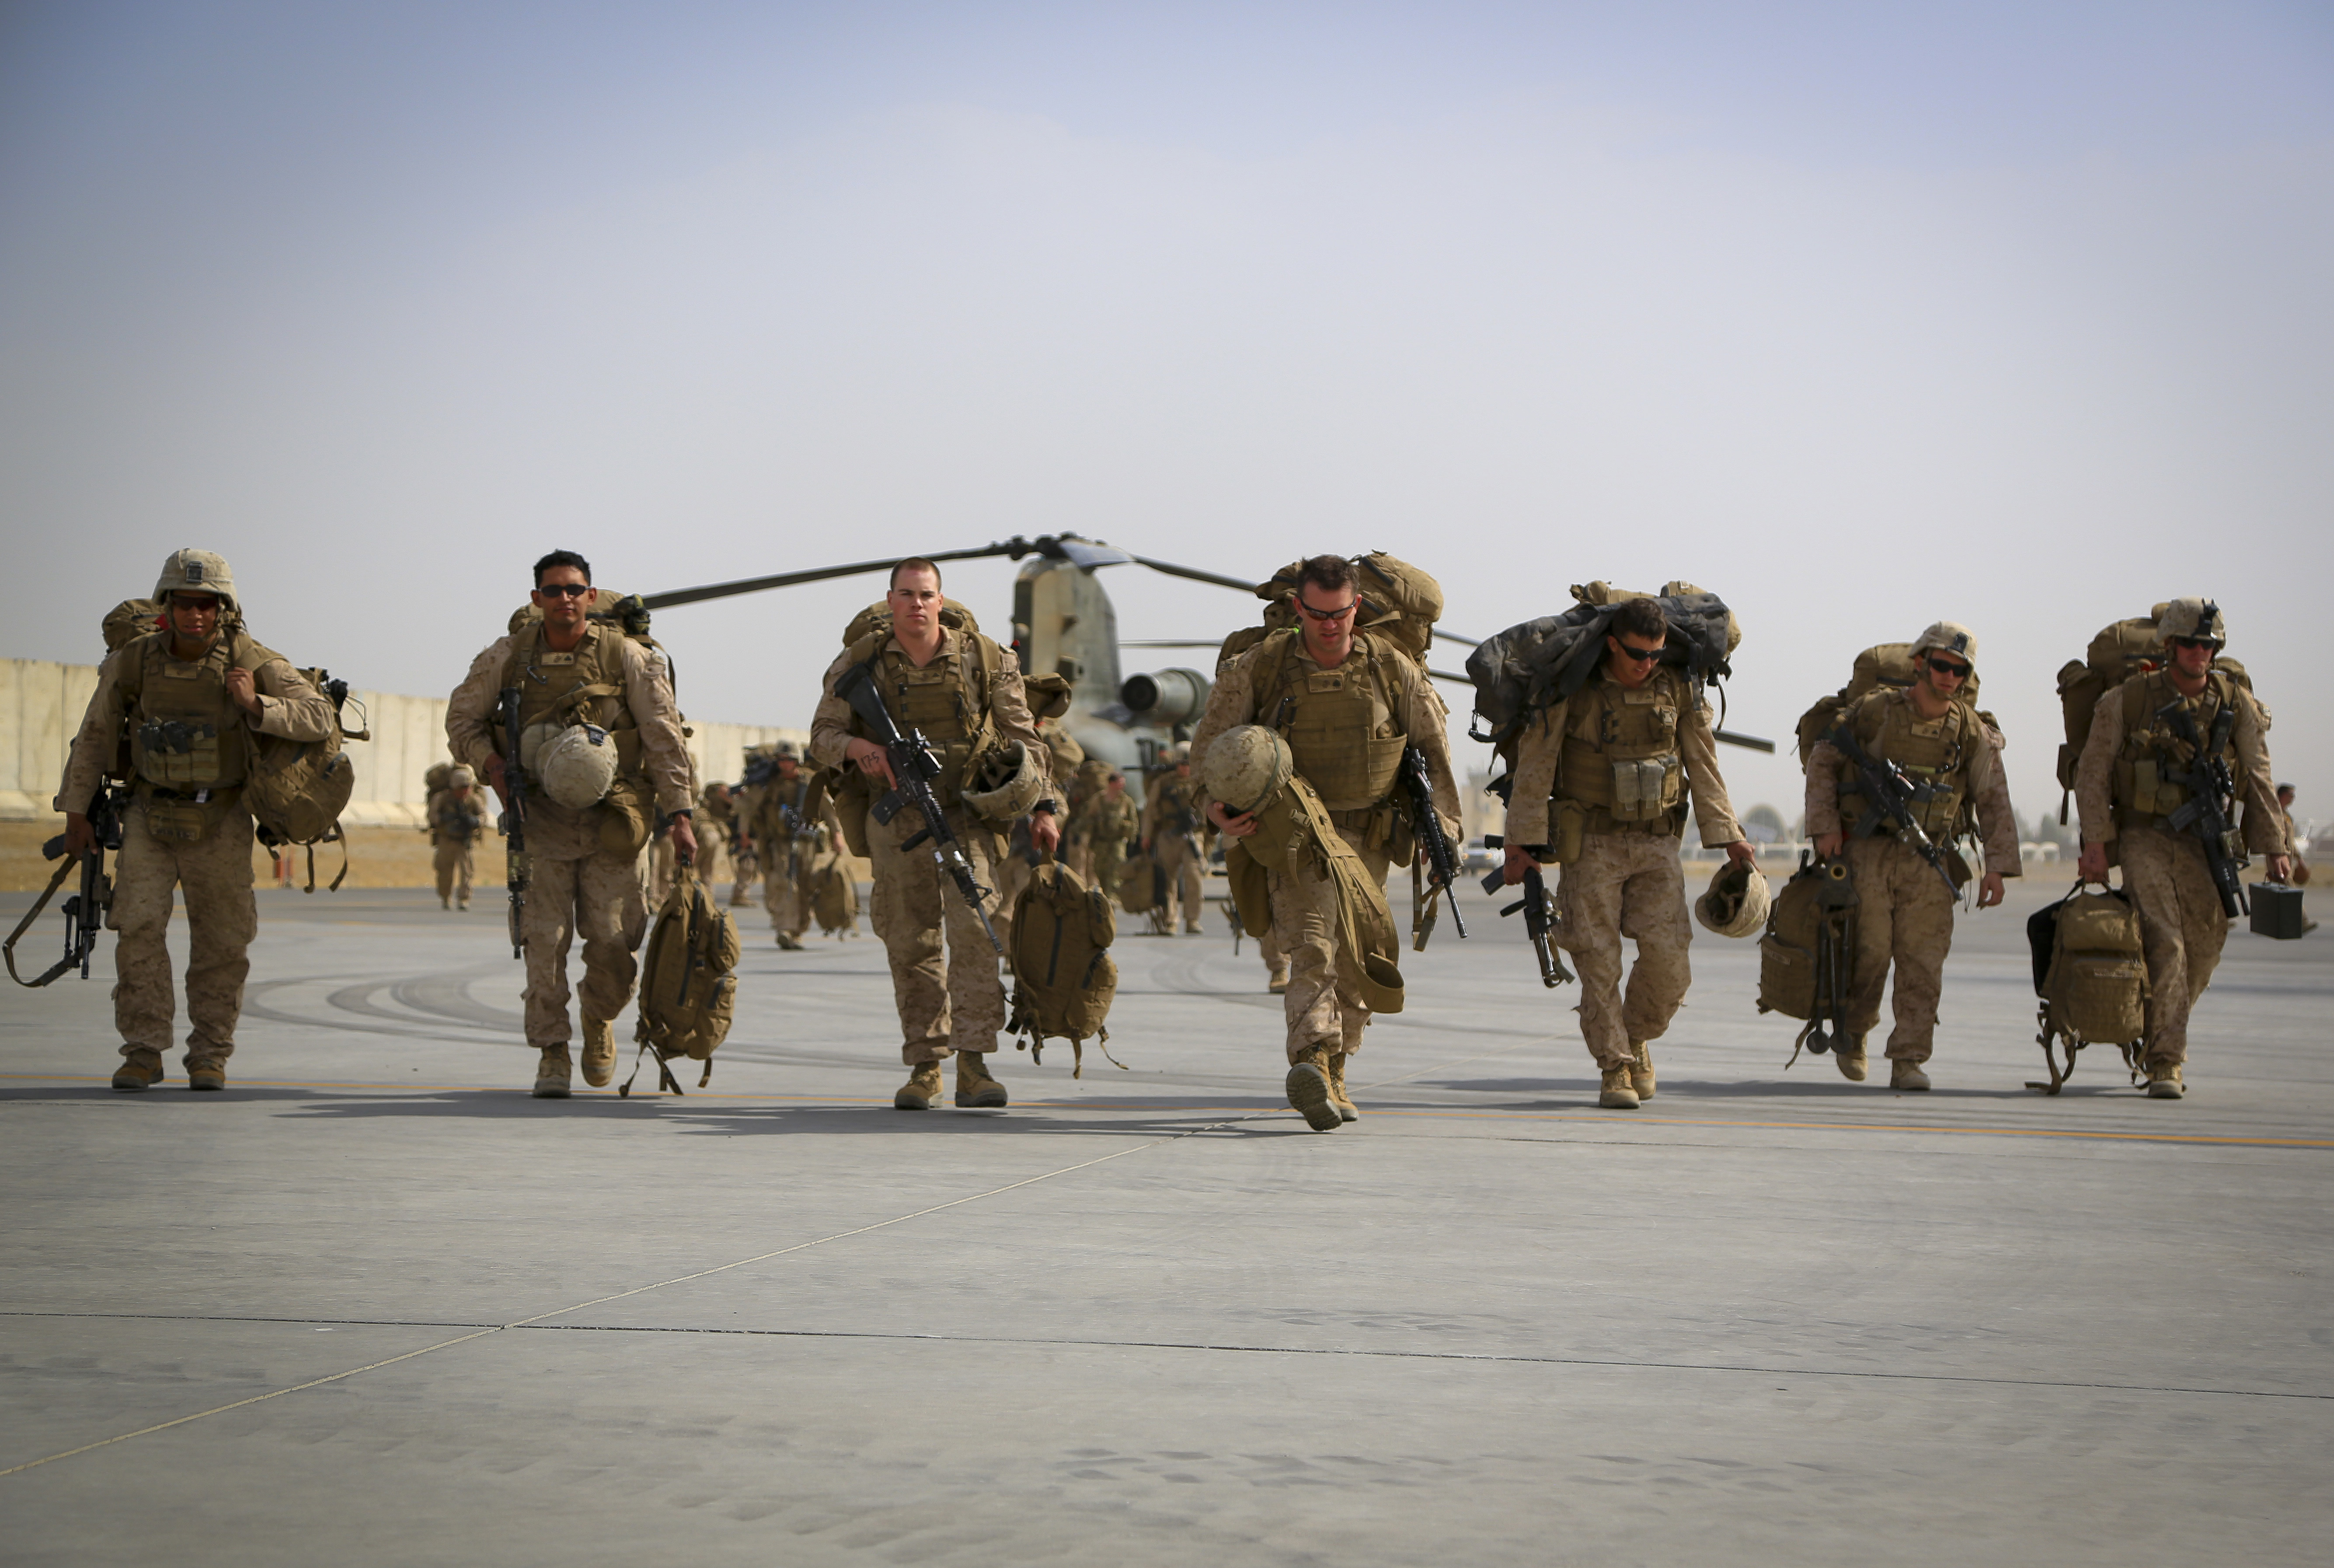 confidence an essential part of who we are as marines